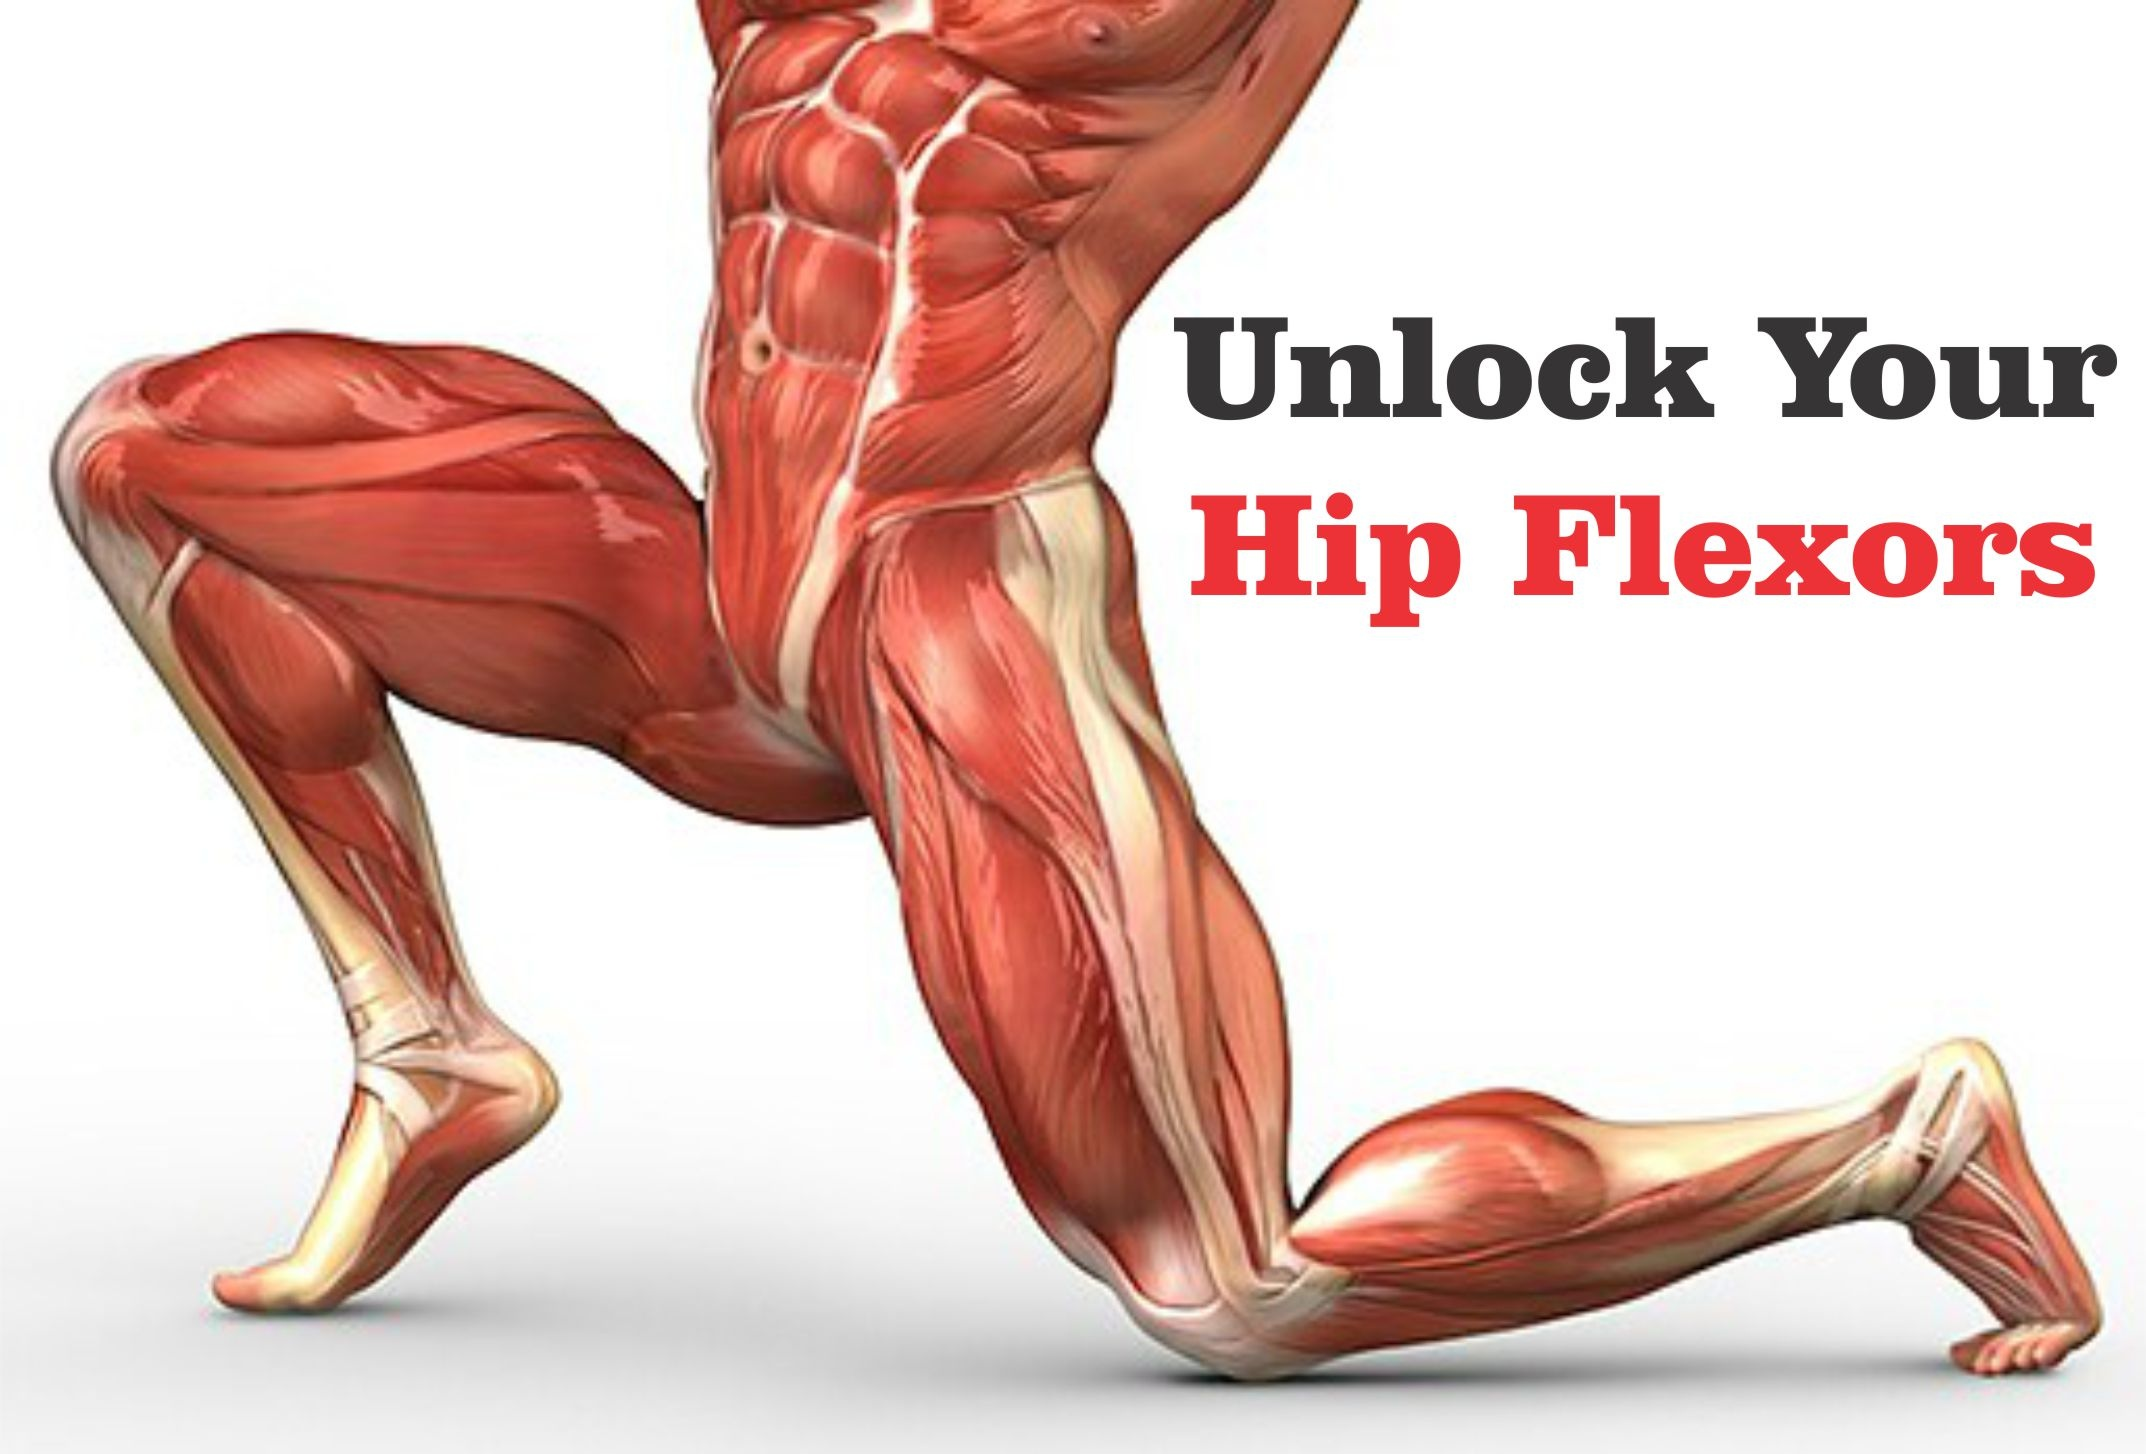 Persistent Hip Flexor Pain